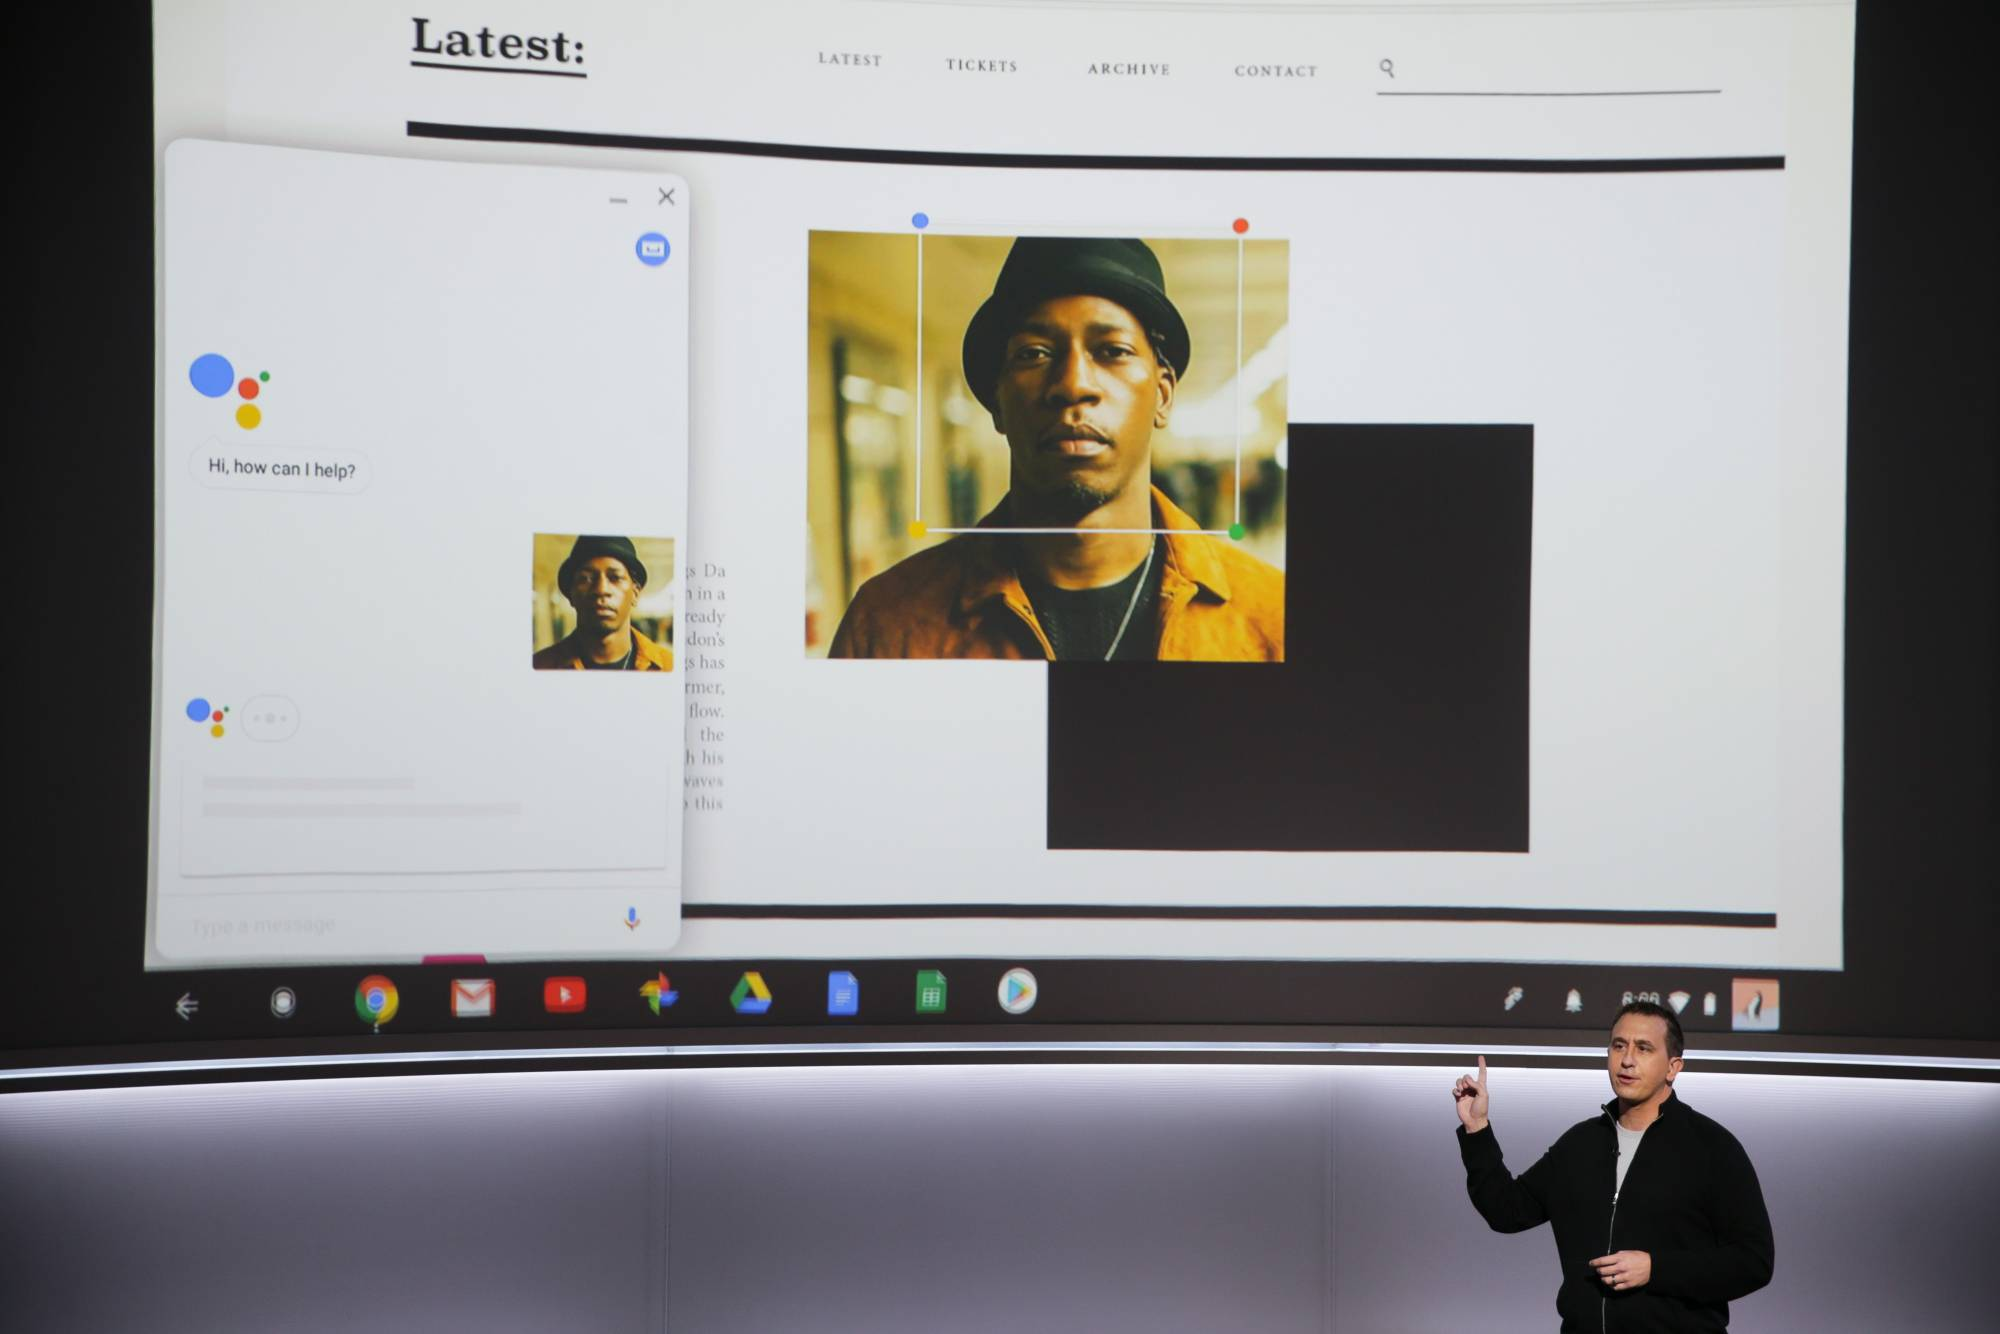 Google Images is getting some muscle from Lens A.I. tech.